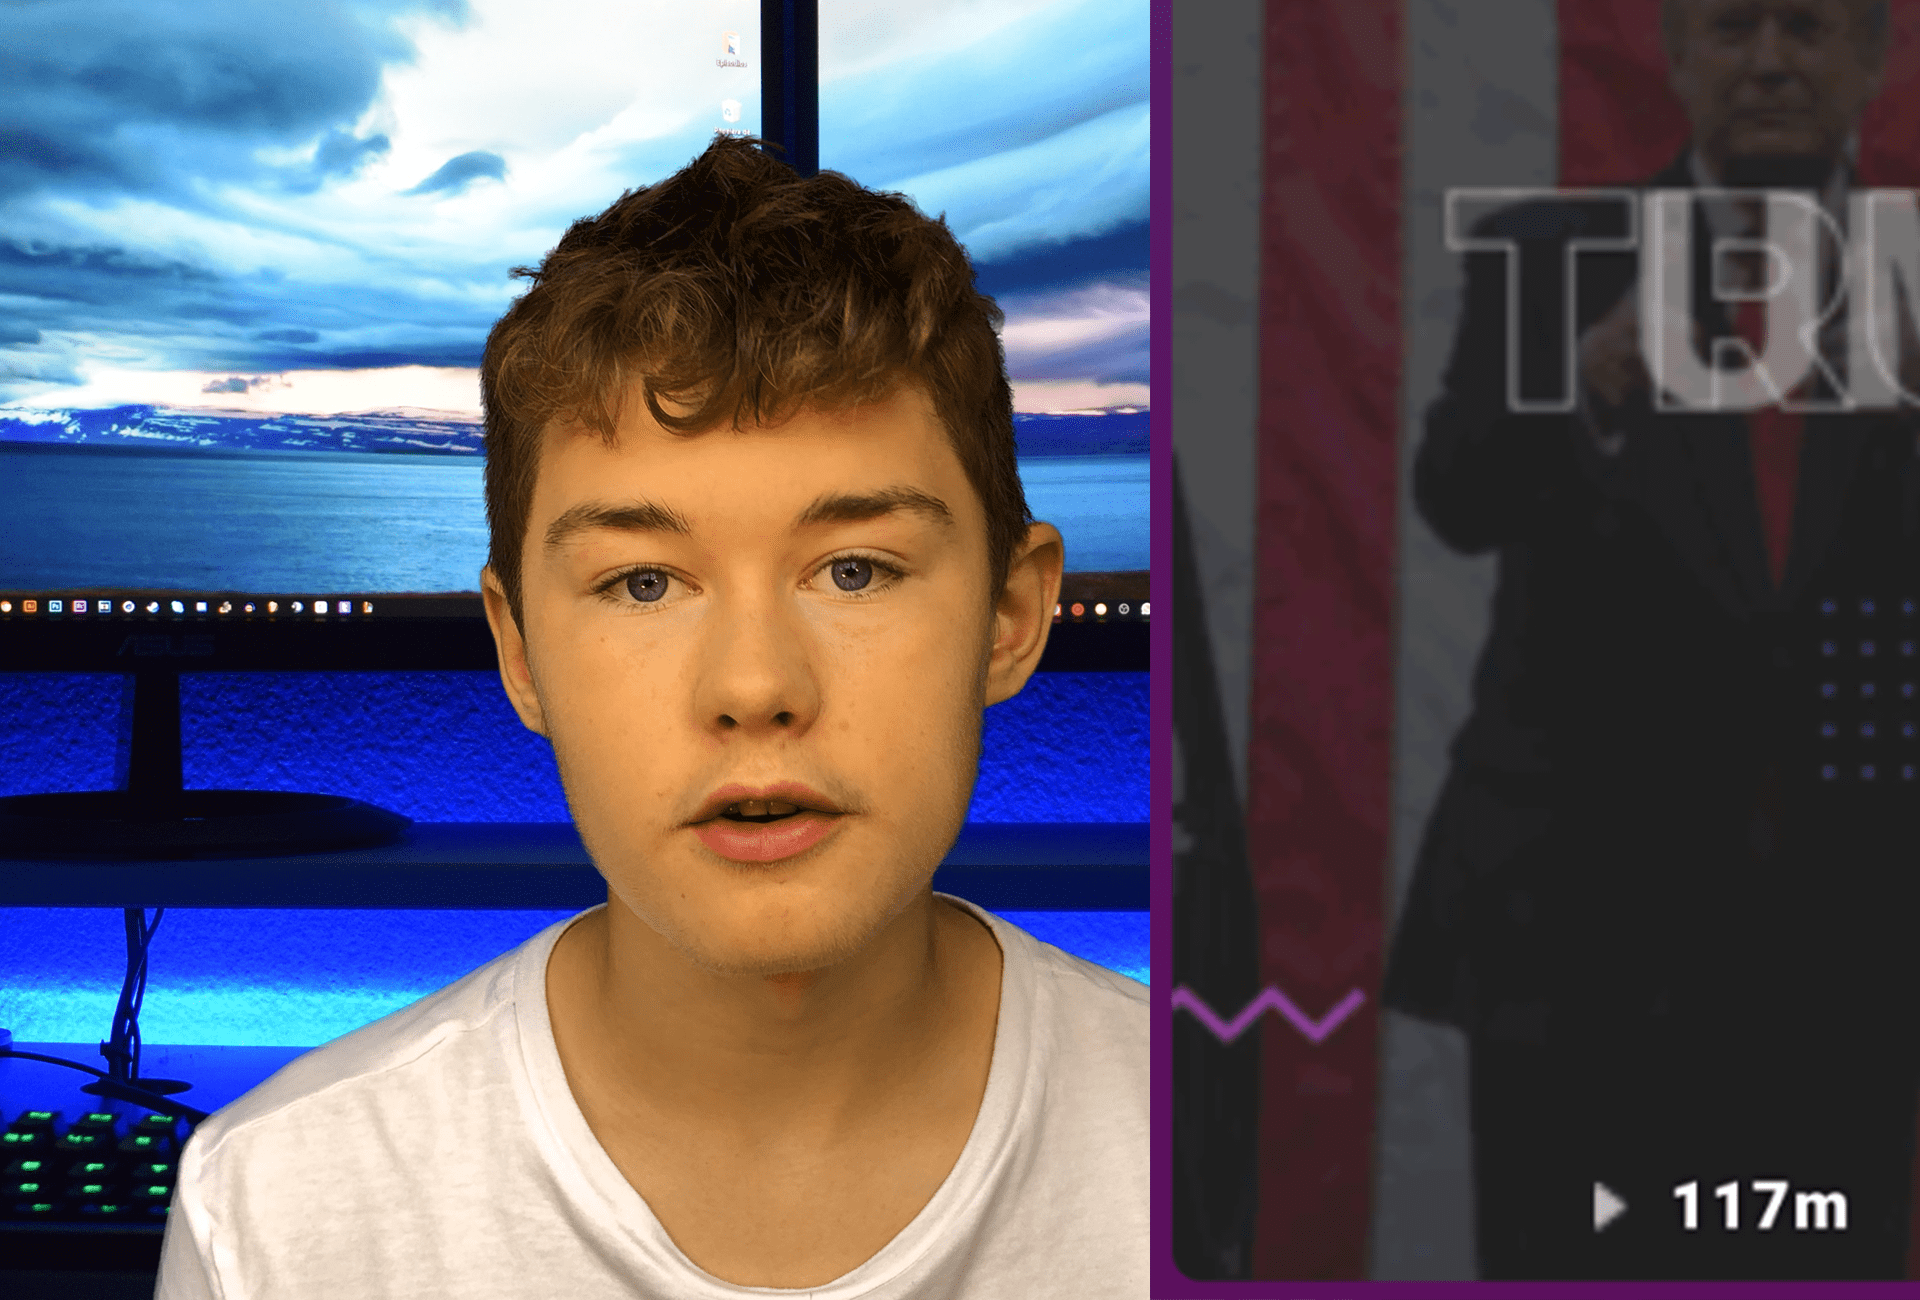 YouTuber realjamesh view bots Donald Trump 100 million views on Triller